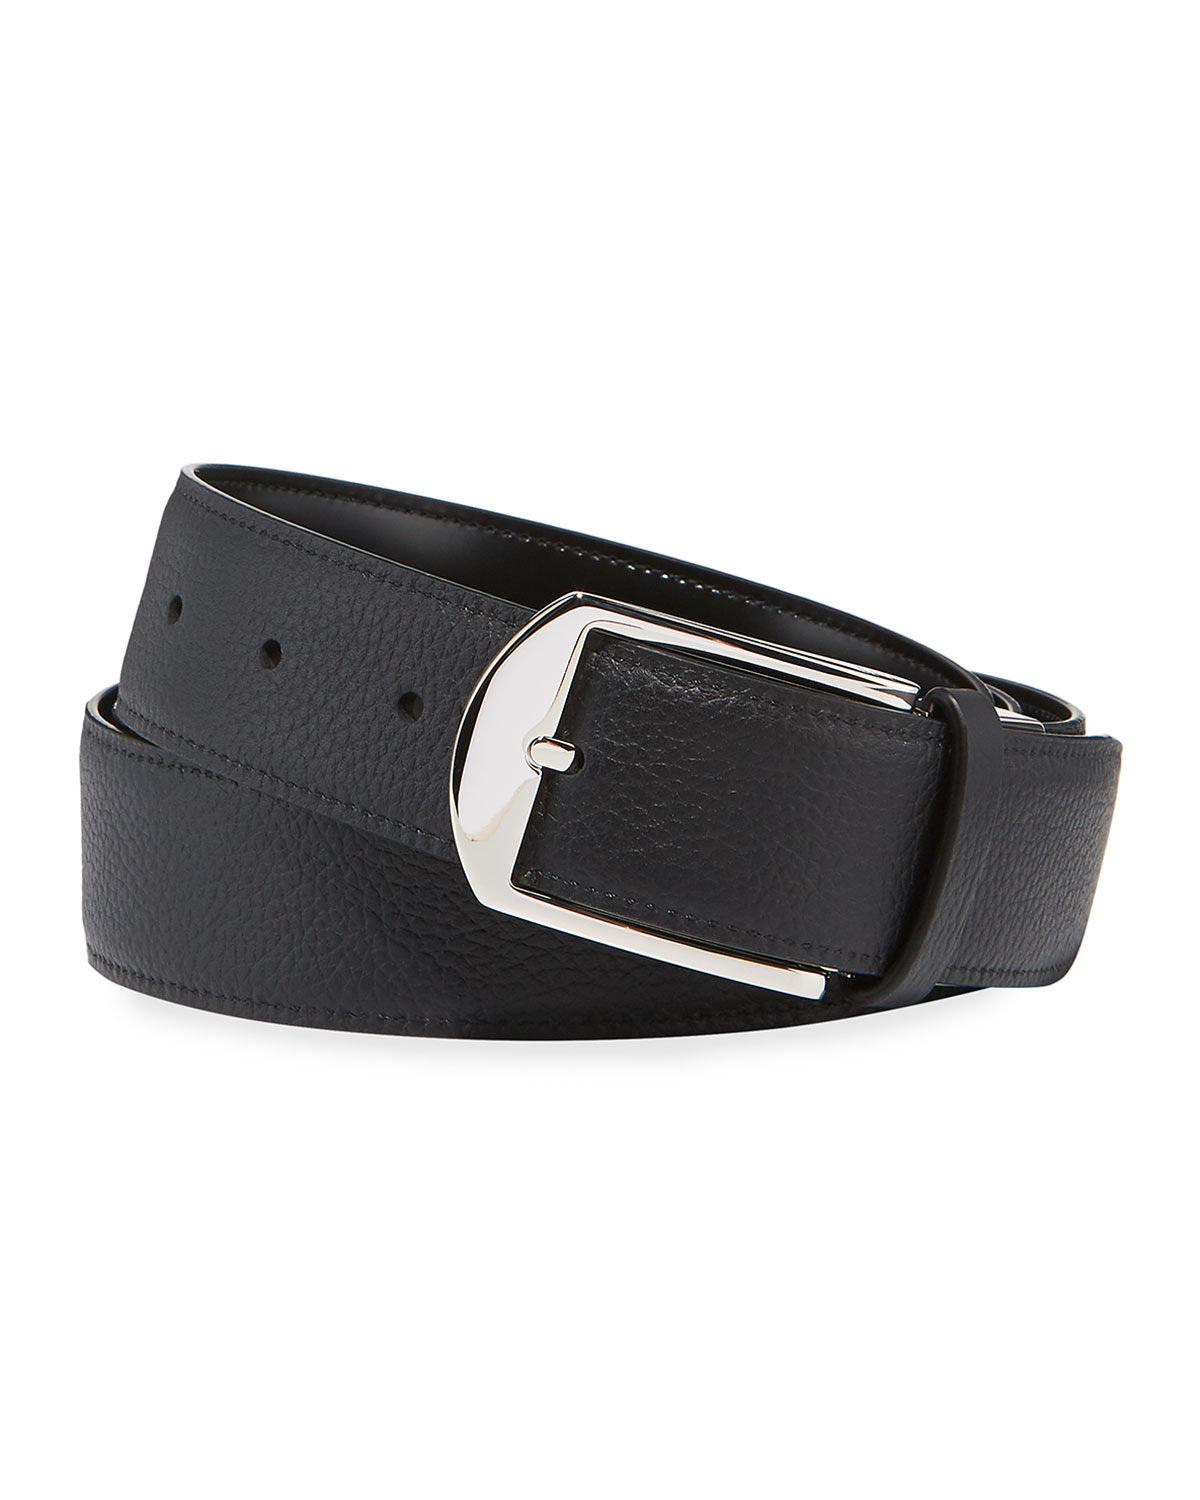 Men's Reversible Grained/Smooth Leather Belt